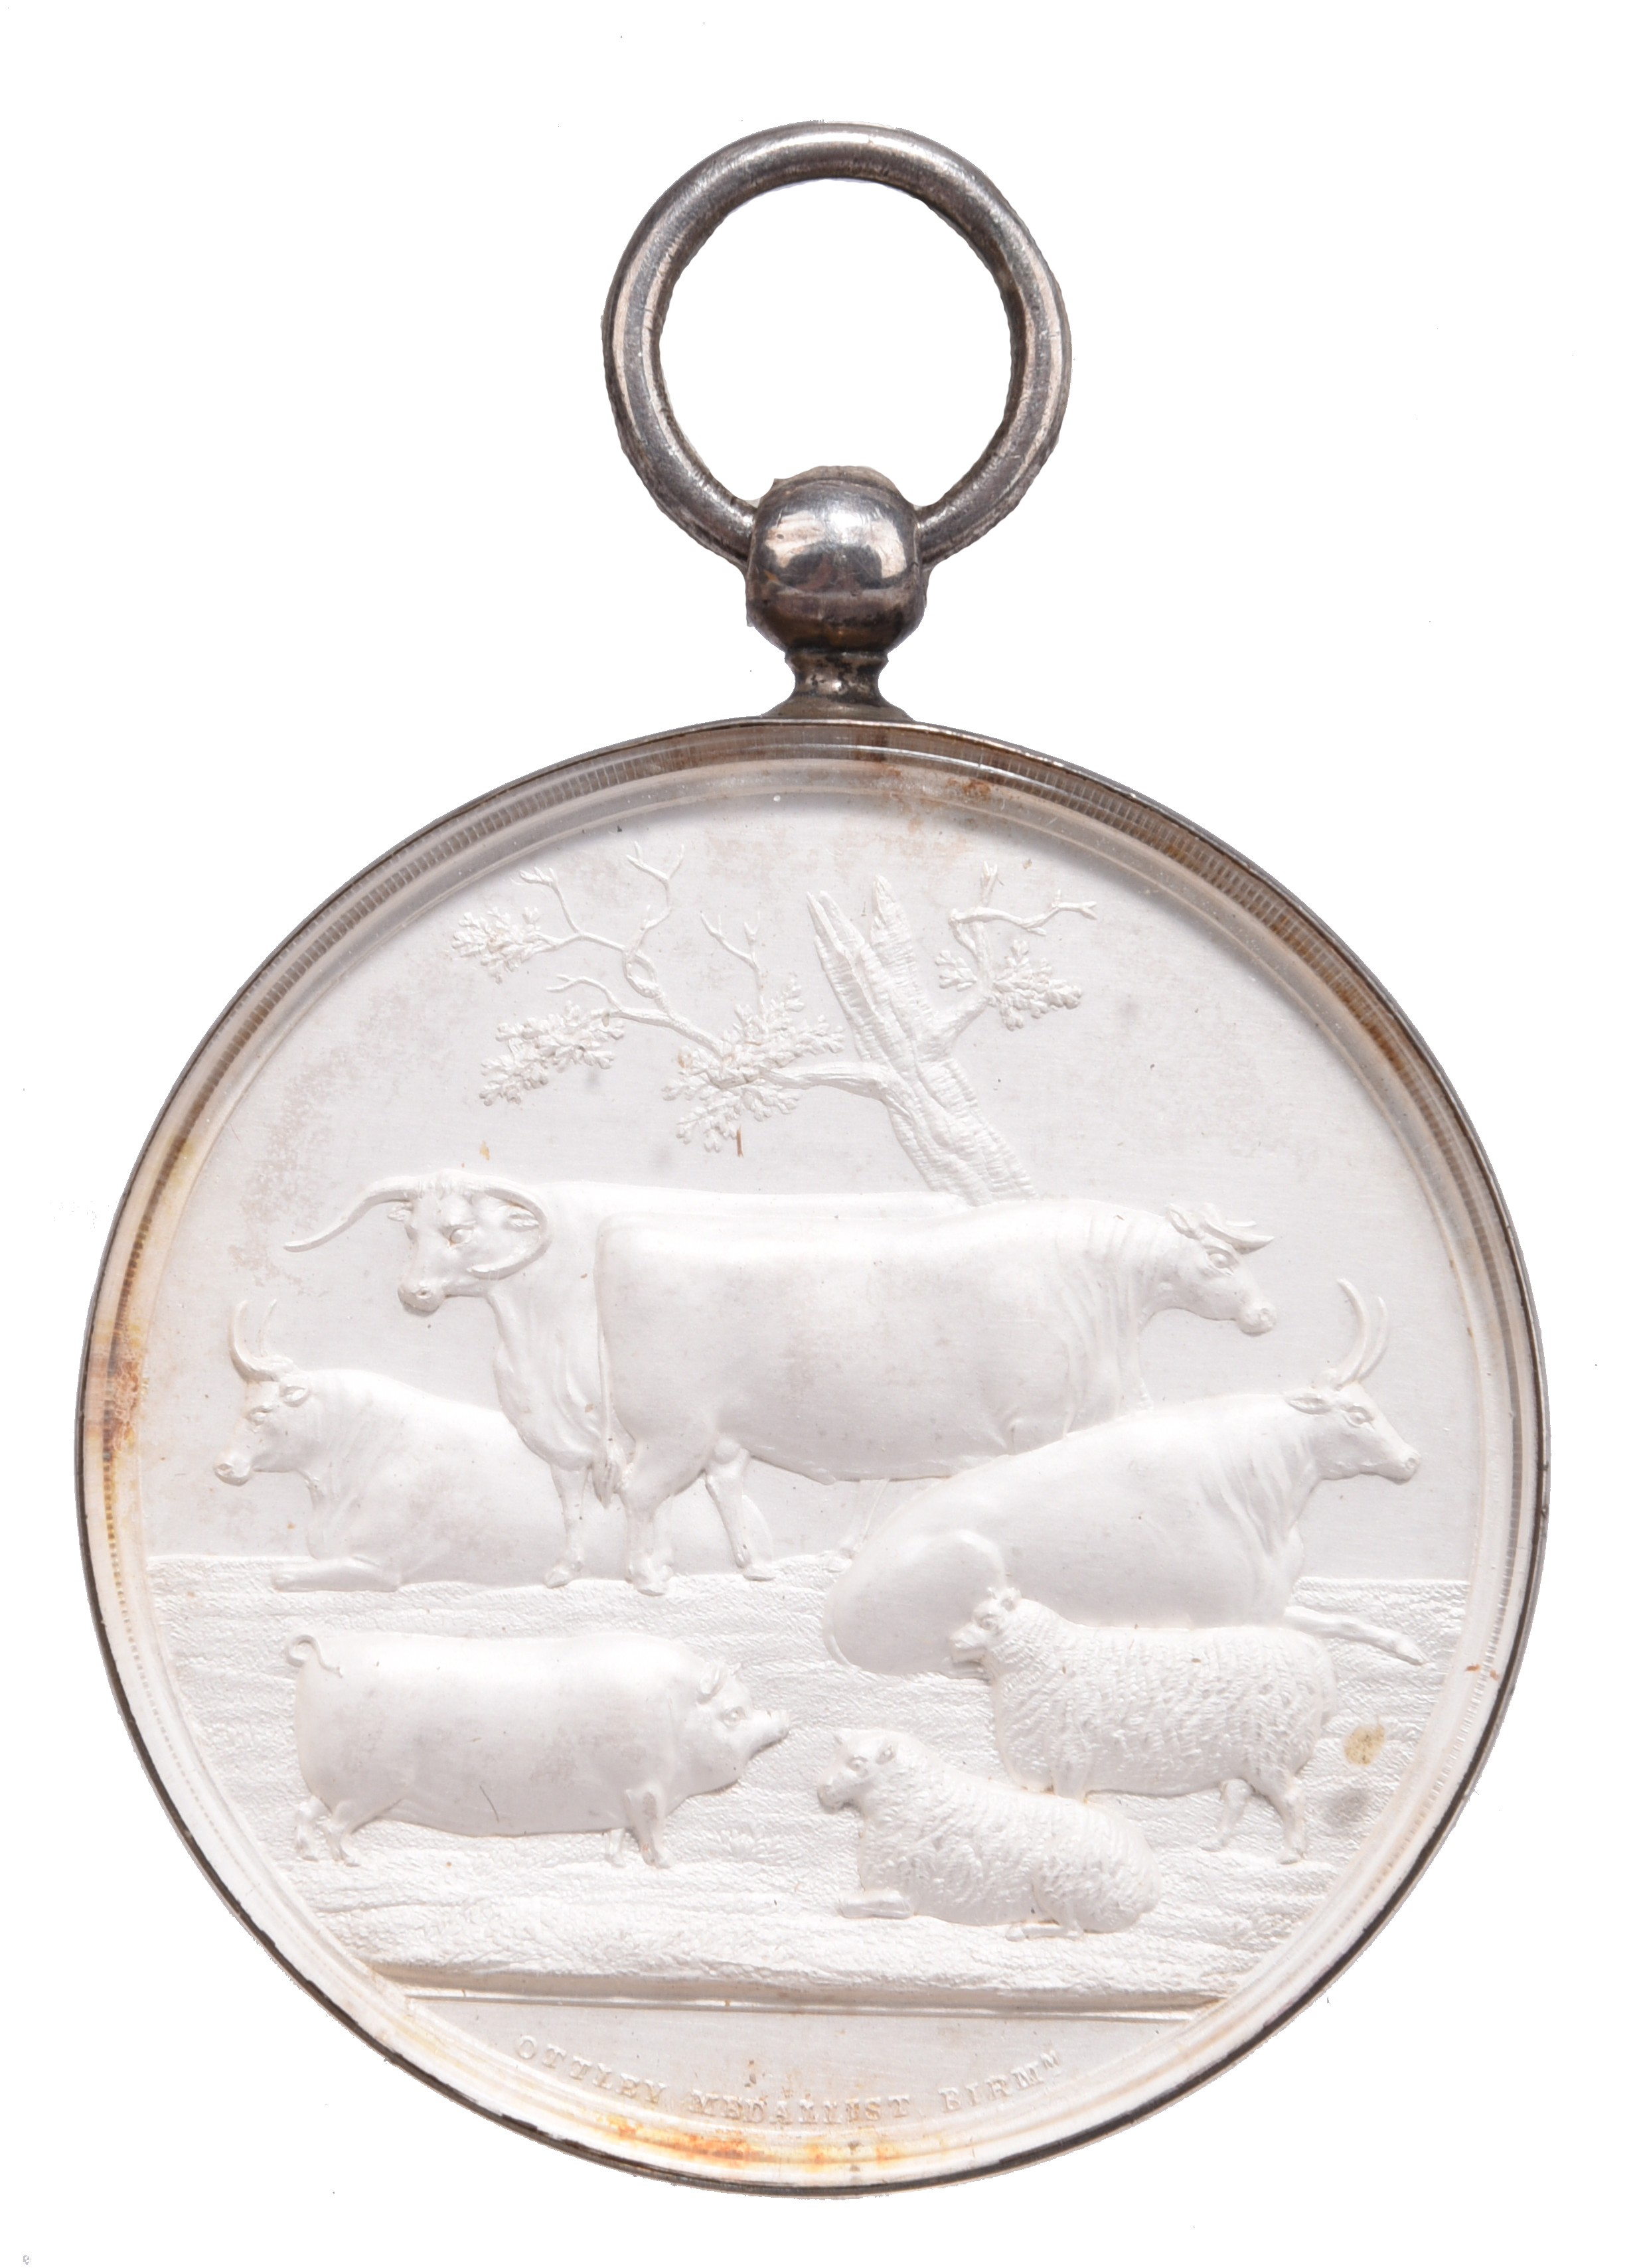 Birmingham and Midland Counties Exhibition: an agricultural prize medal, silver, 54mm, livestock